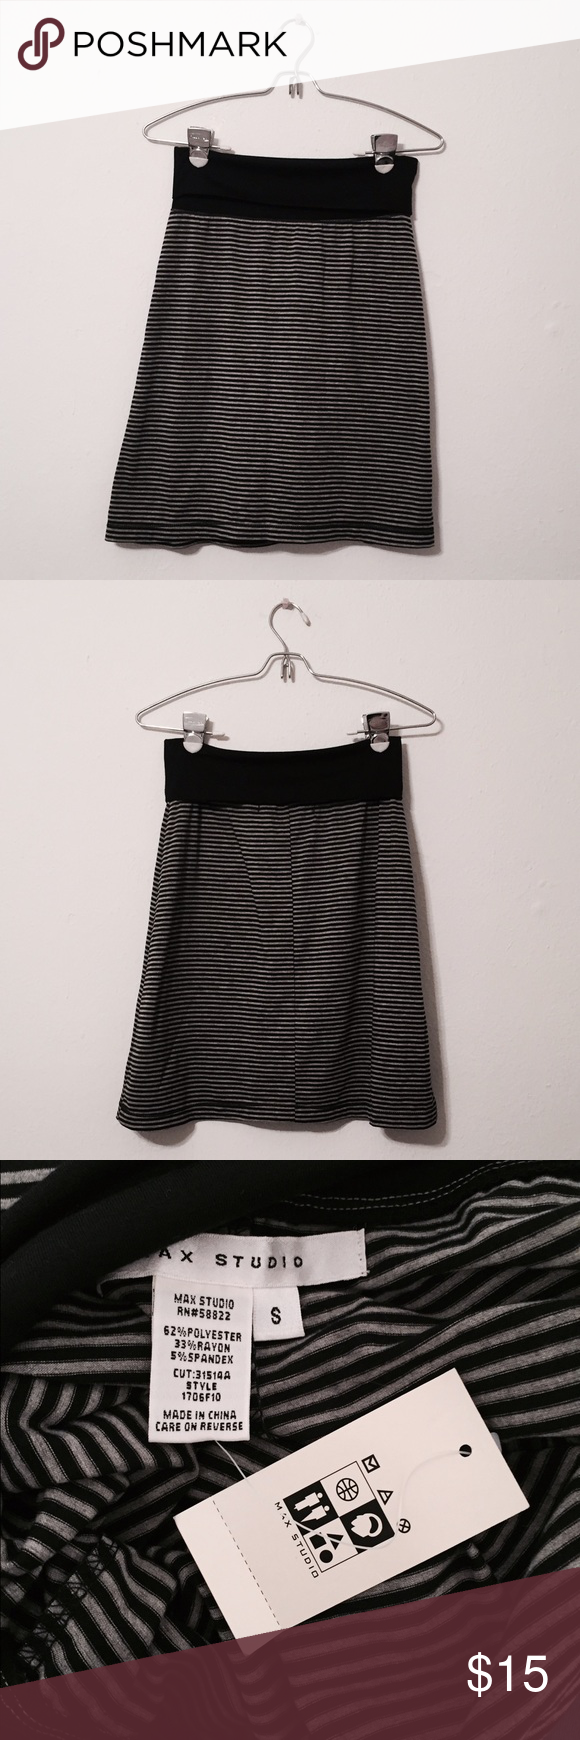 MAX STUDIO Stripped Skirt A stripped skirt that is new and comes with its tags! Max Studio Skirts